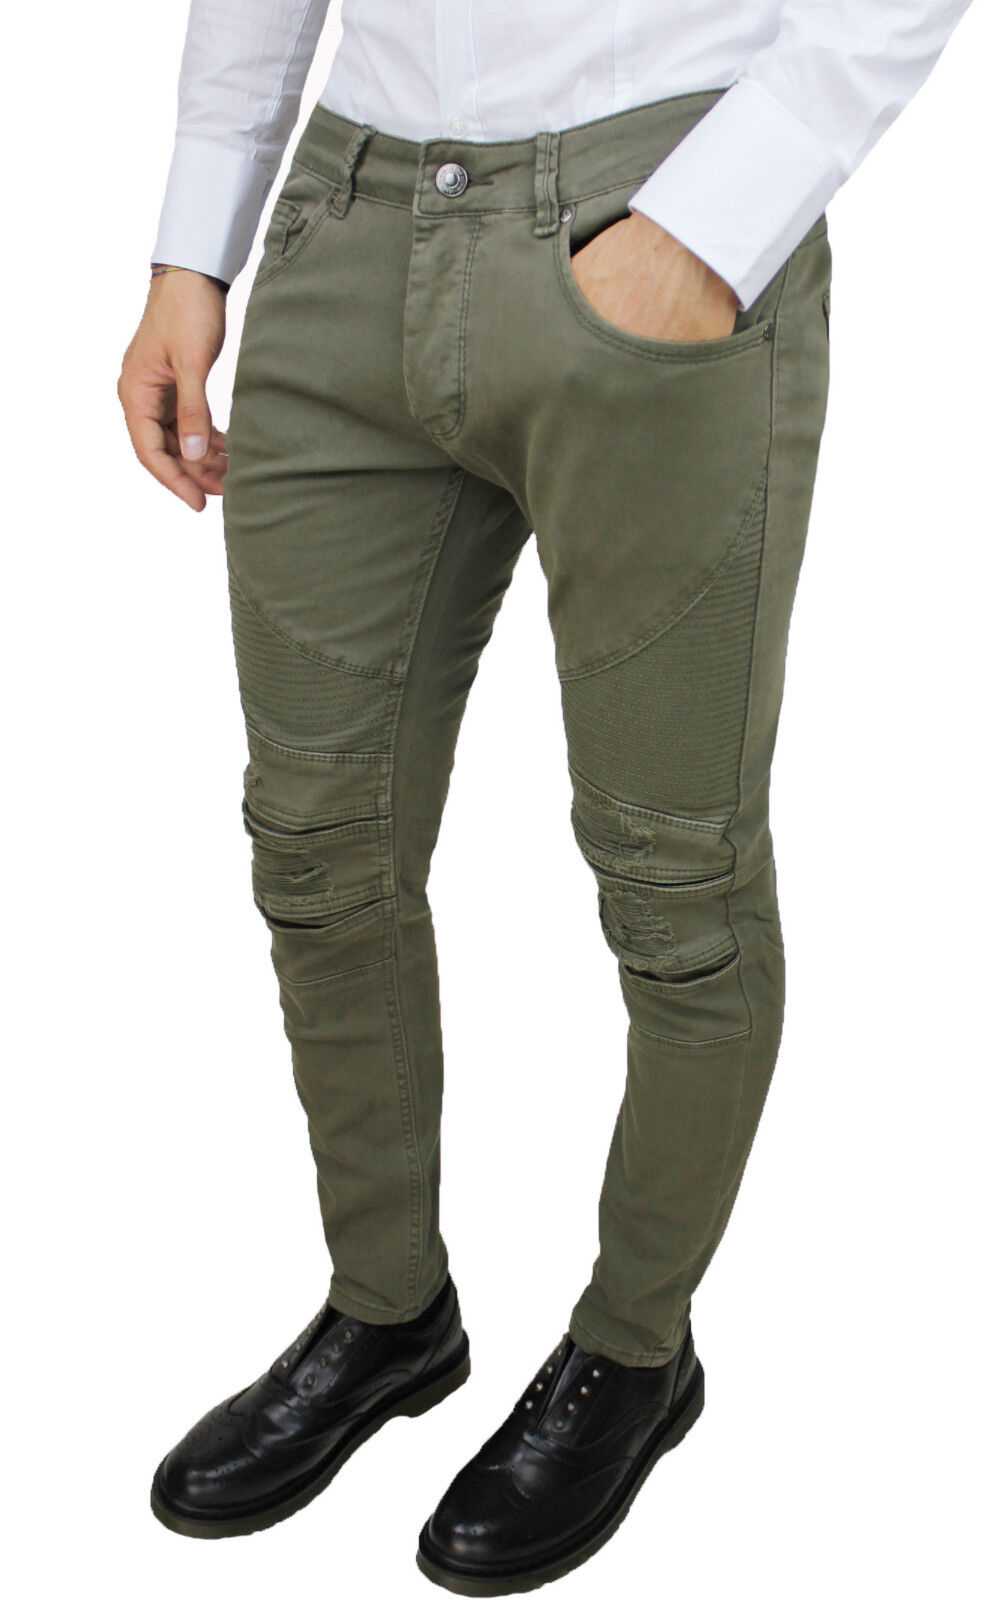 TROUSERS MAN SLIM FIT MILITARY GREEN TREND JEANS COTTON ELASTIC da 42 a 52